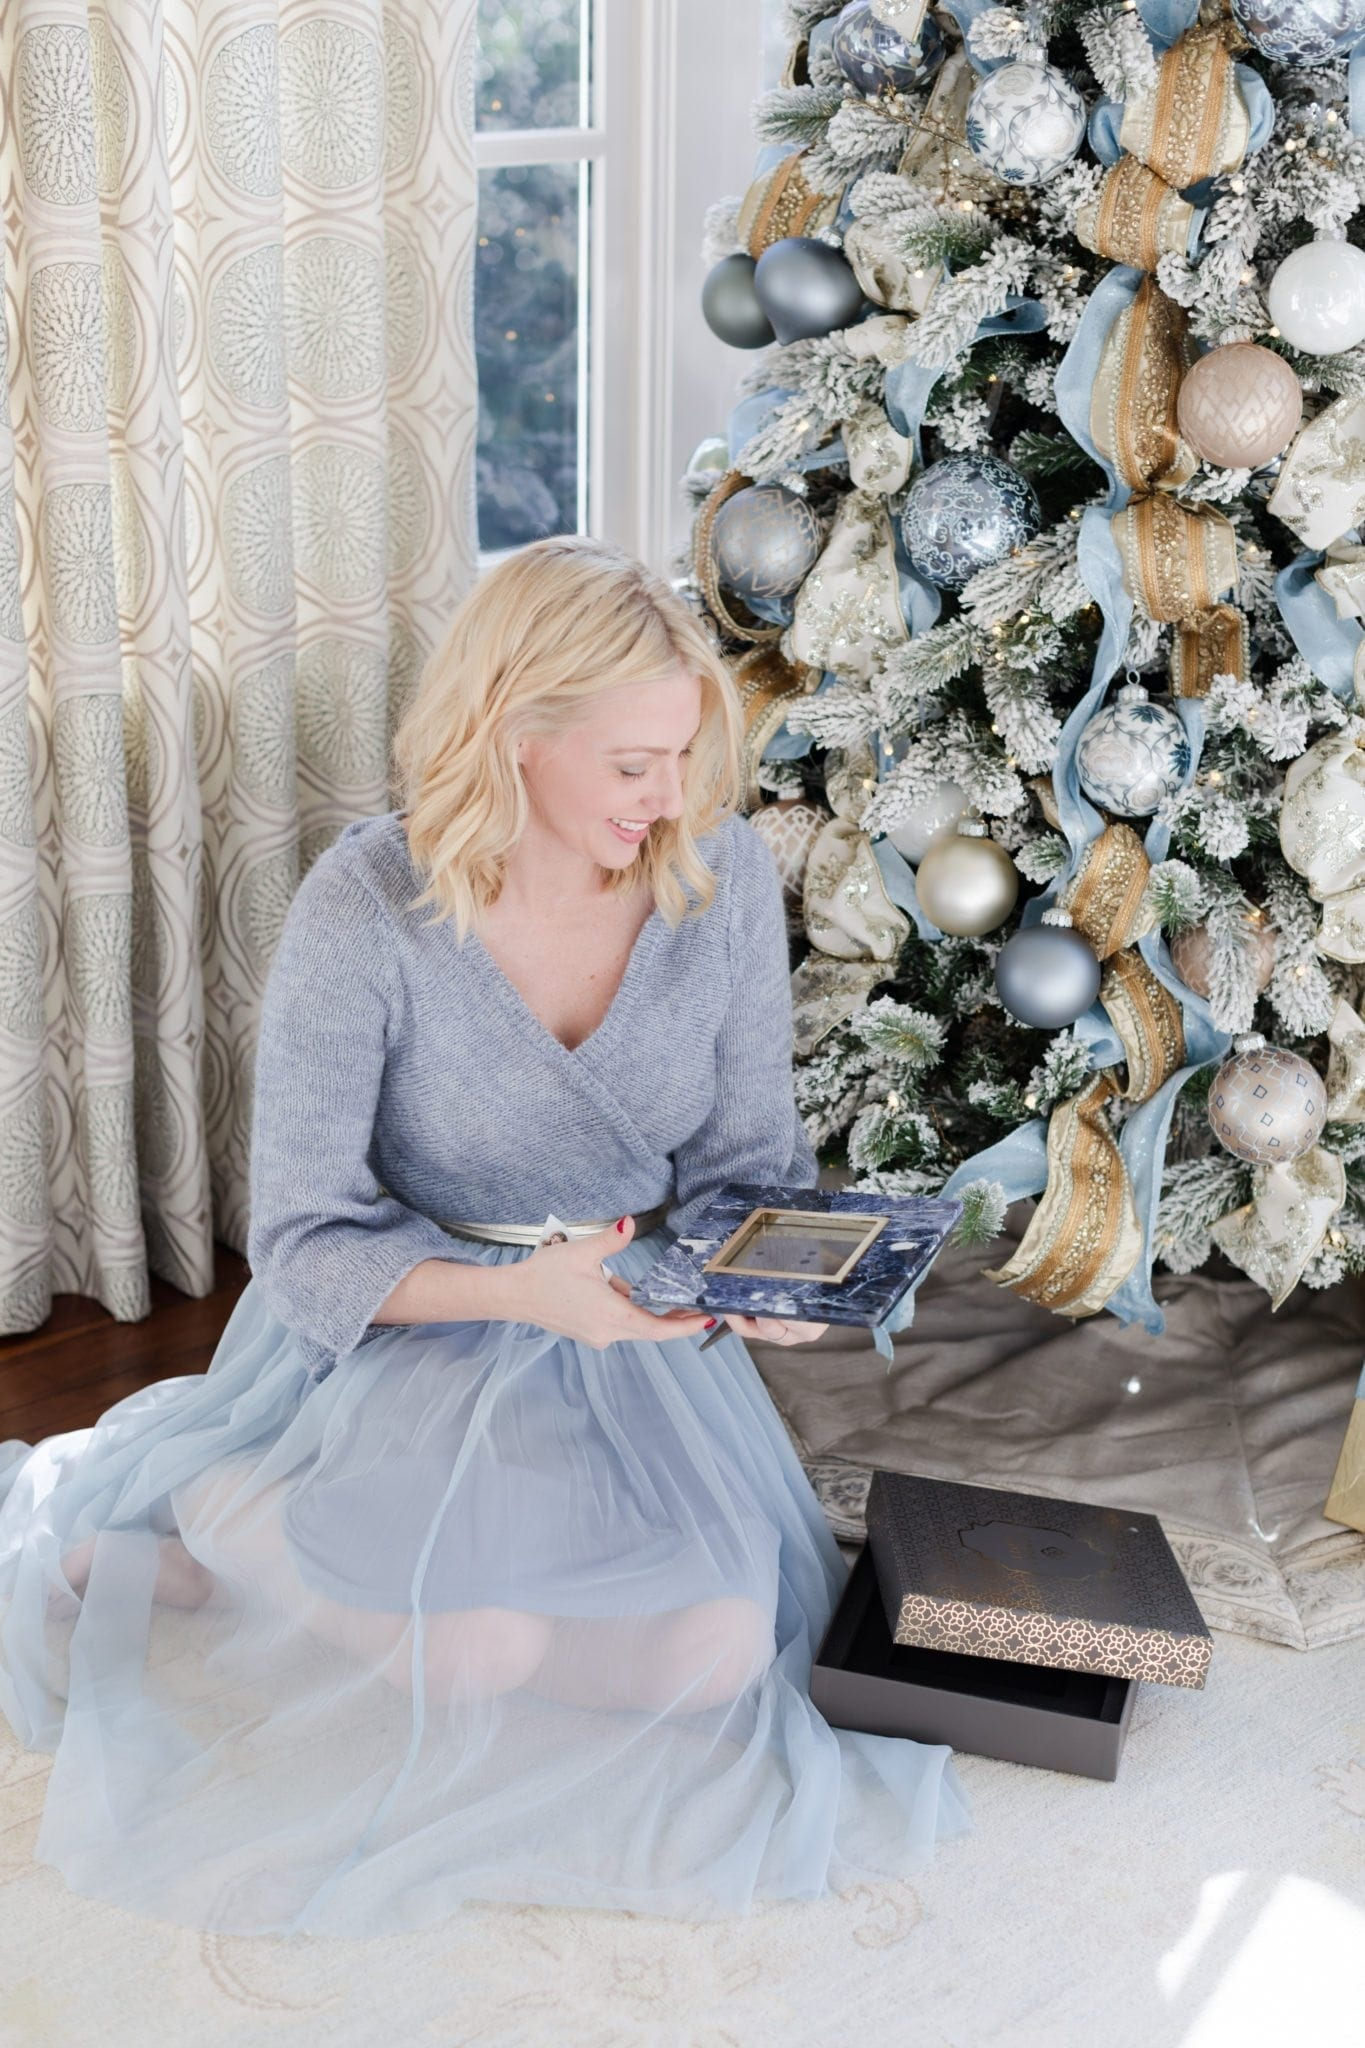 Last minute gift ideas all under $50. Blue dress from Anthropologie and blue and gold Christmas tree.